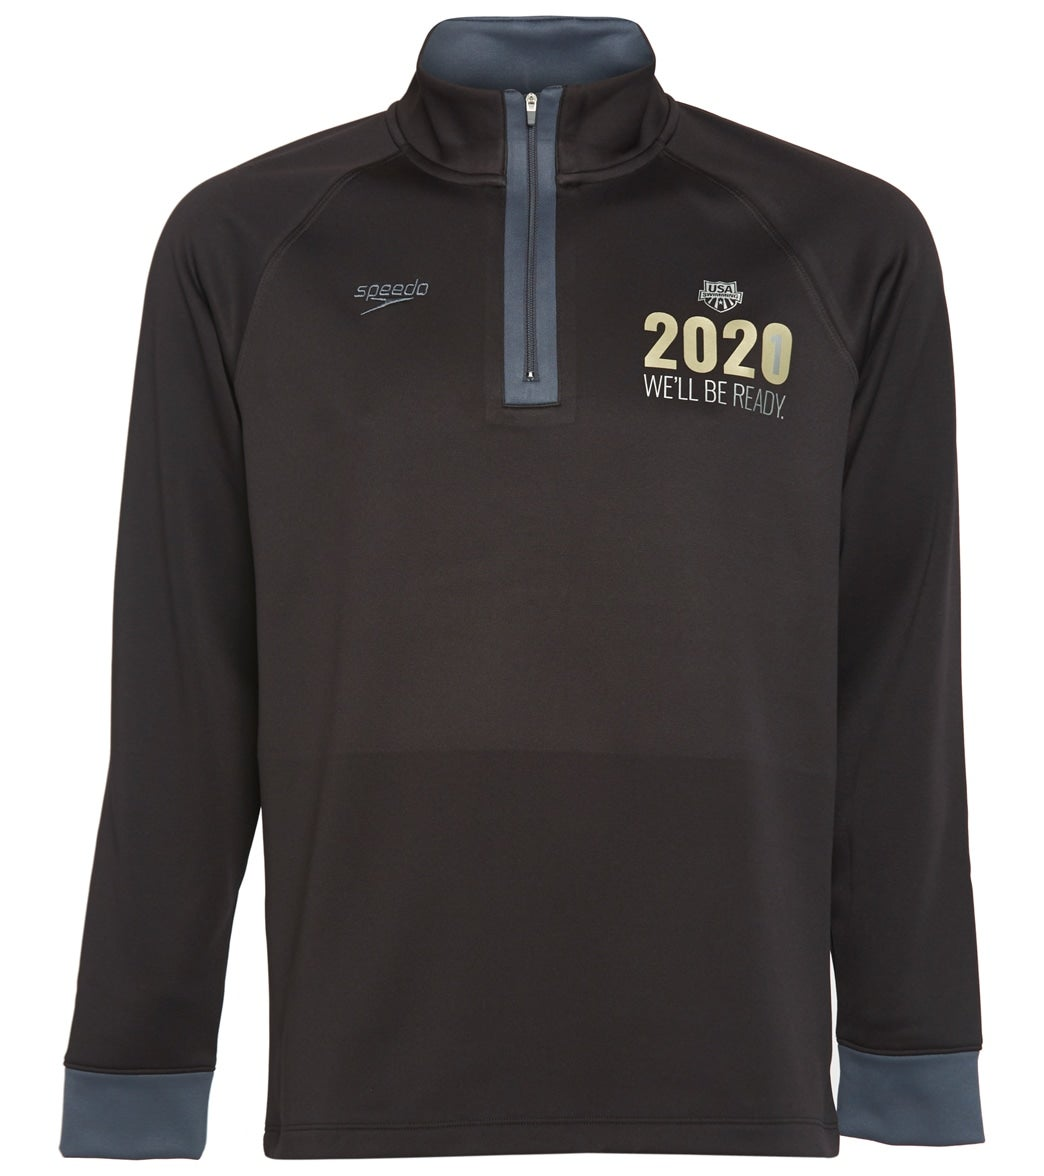 The Speedo USA Swimming Unisex 2021 We Will Be Ready Pull Over Hoodie Sweatshirt is part of USA Swimming's Special Collection: '2021 We ll be Ready'. All proceeds from the sale of this product will go to support U.S. National Team athletes in their continued preparation for the Olympic Games in Tokyo in 2021. Your support is incredibly appreciated.|https://www.swimoutlet.com/p/speedo-usa-swimming-unisex-2021-well-be-ready-pull-over-hoodie-sweatshirt-8197133/?color=10890|0|stt8